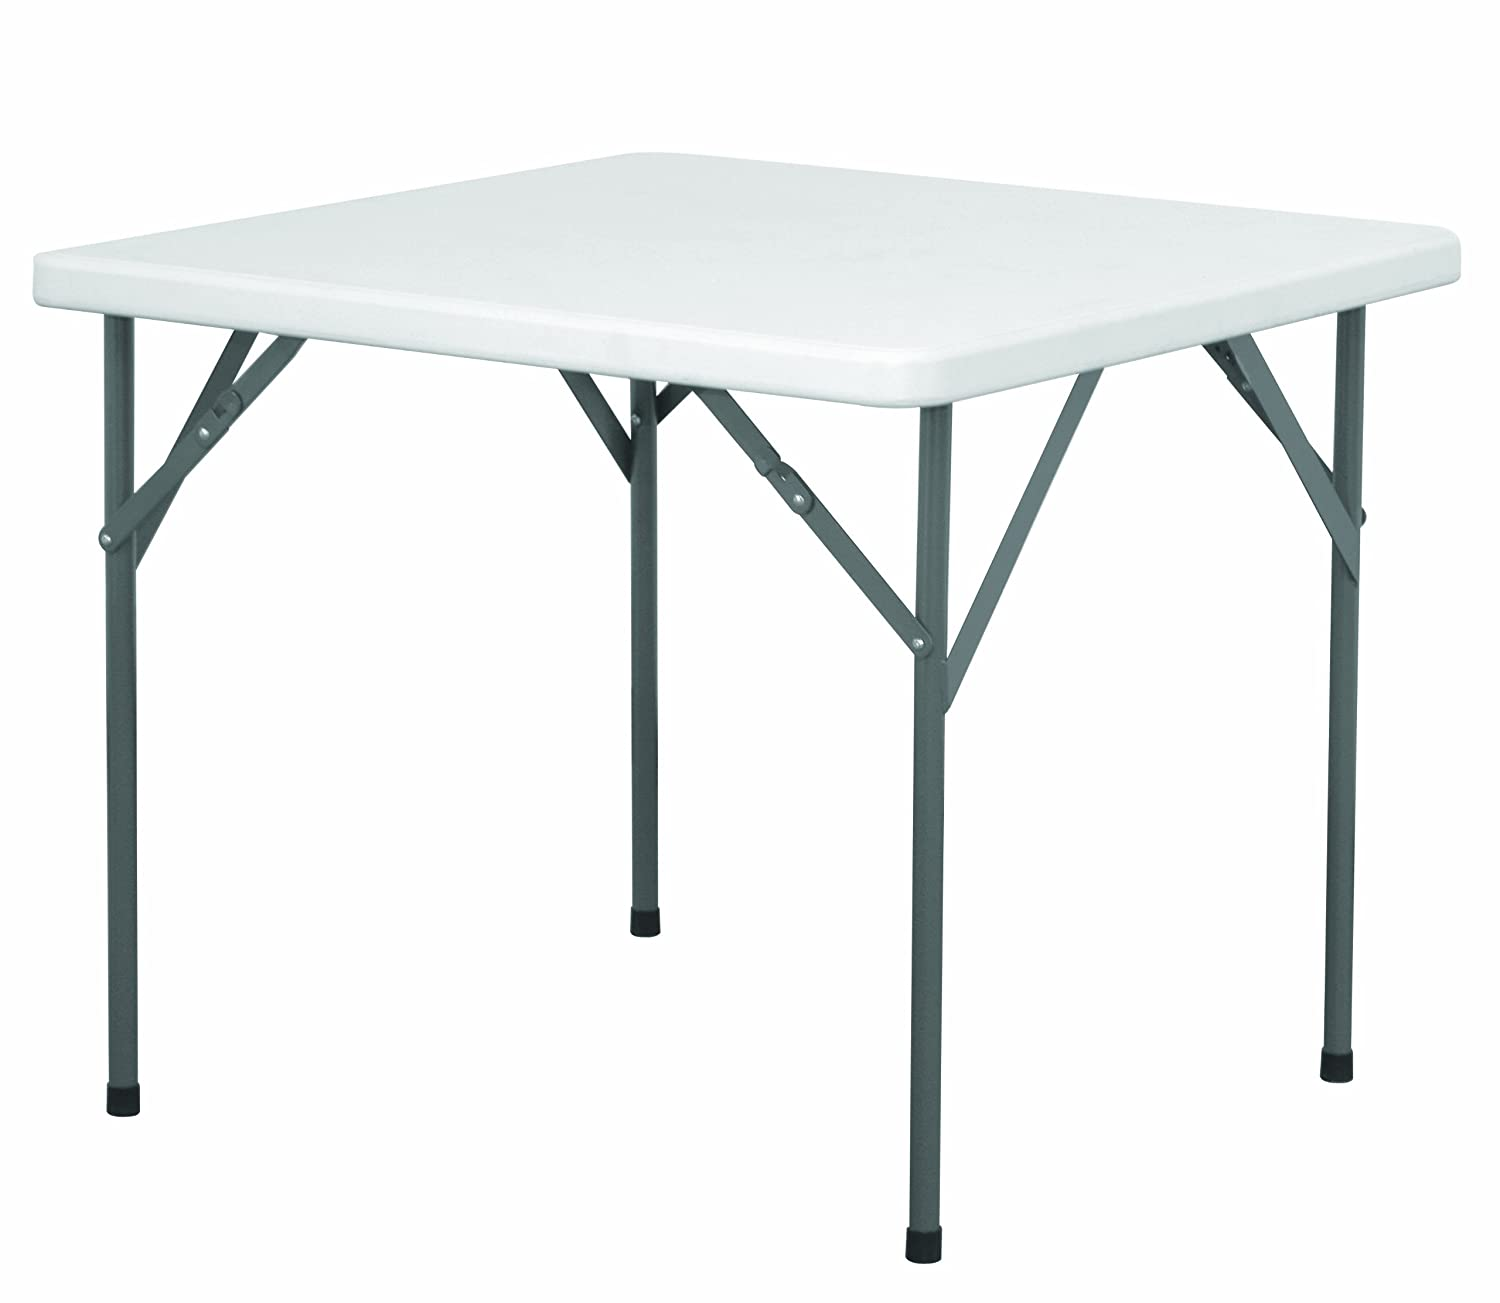 EAZYGOODS Heavy Duty Plastic Square Folding Legs Table, White, 88 x 88 x 73 cm Eazy Goods Ltd